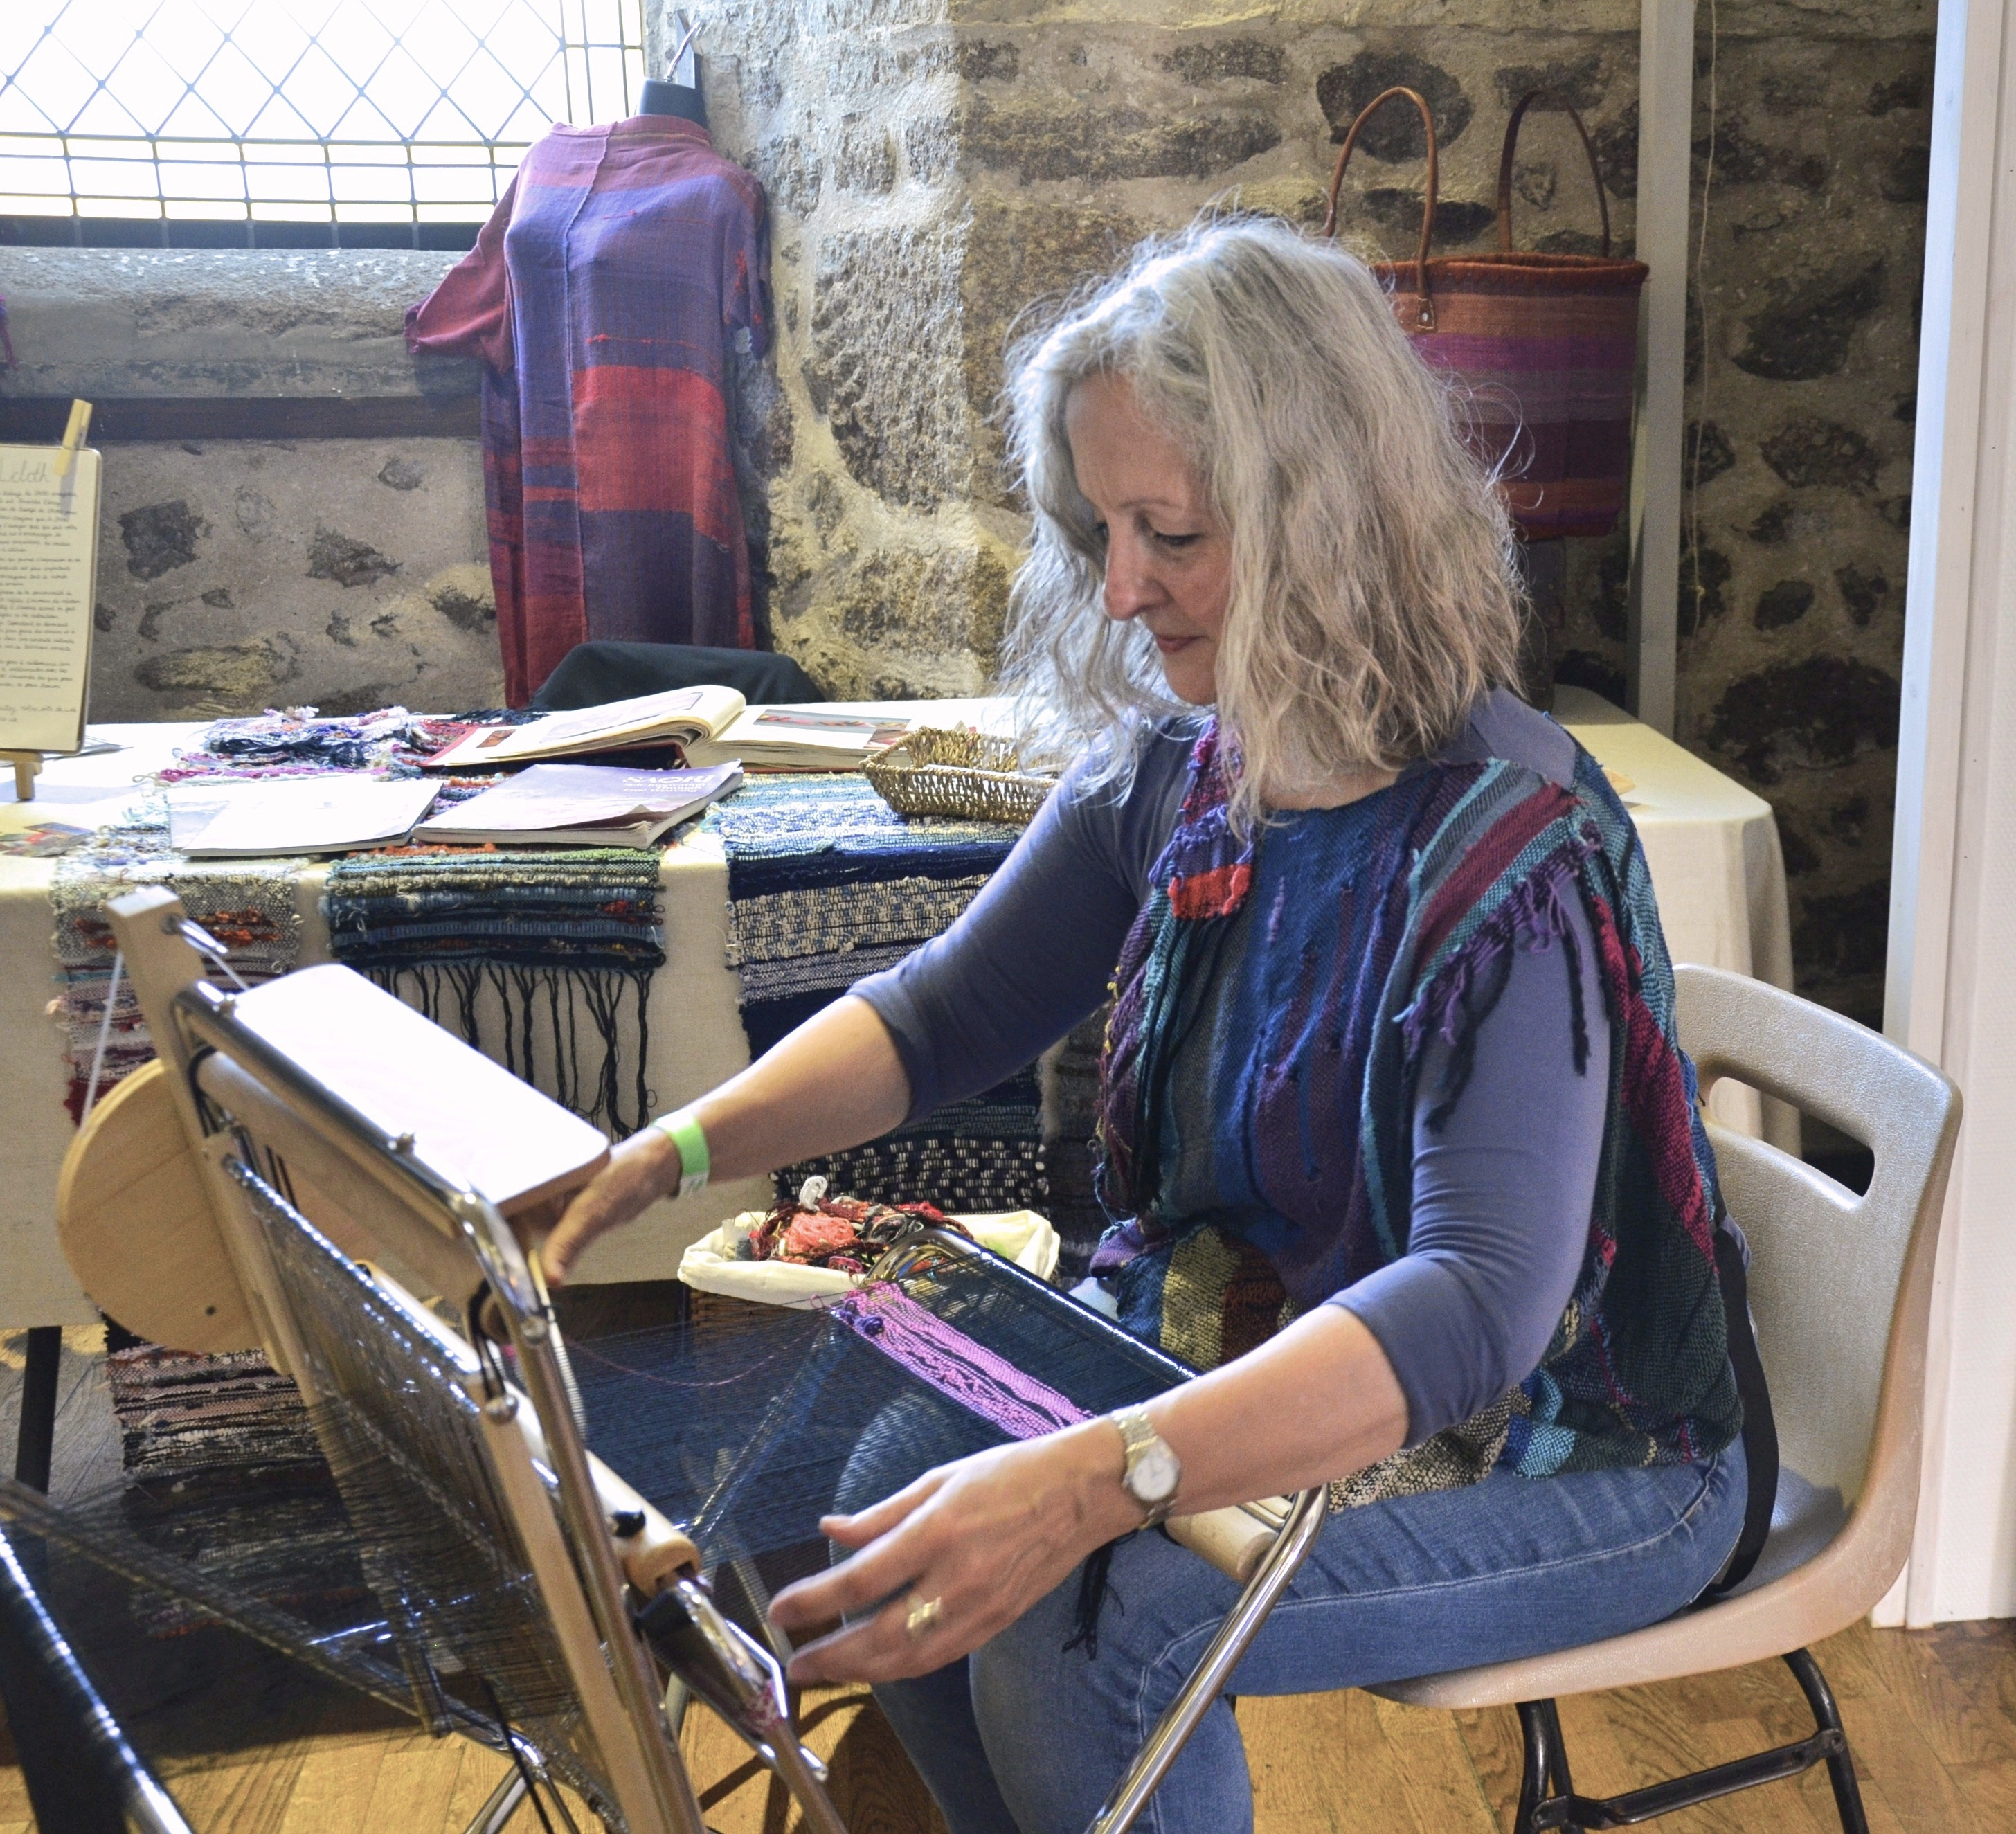 Amanda saori weaving at an art festival in Lassay-les-Chateaux, France.